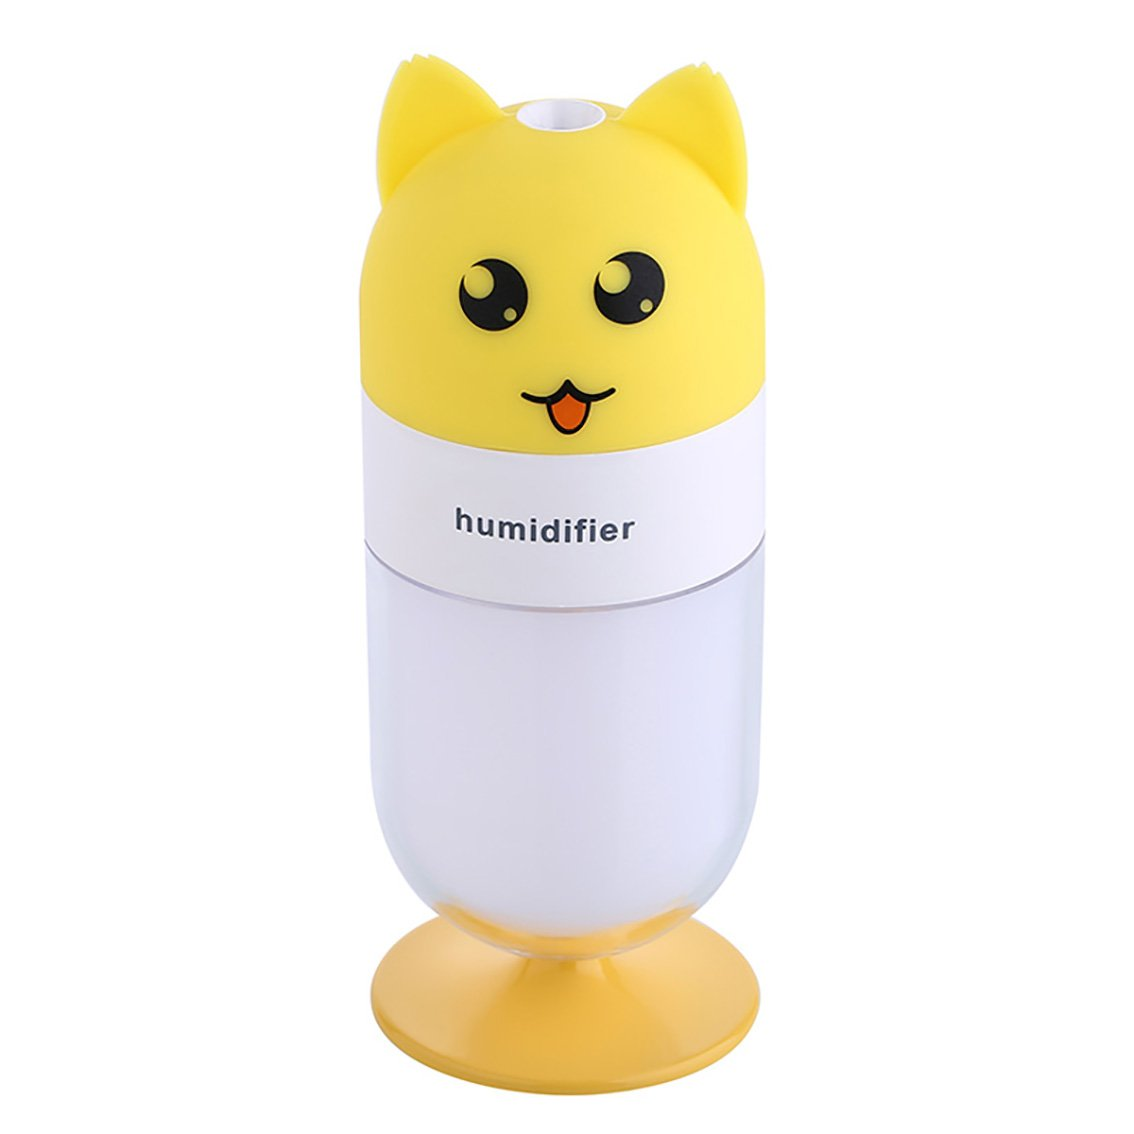 EMEO Air Humidifiers for Desktop, Baby, Bedroom, Car, Home or Office, Powered with Any USB Sources, Portable Compact Humidifying Mist with Auto Shut-off and LED Lights, Mini